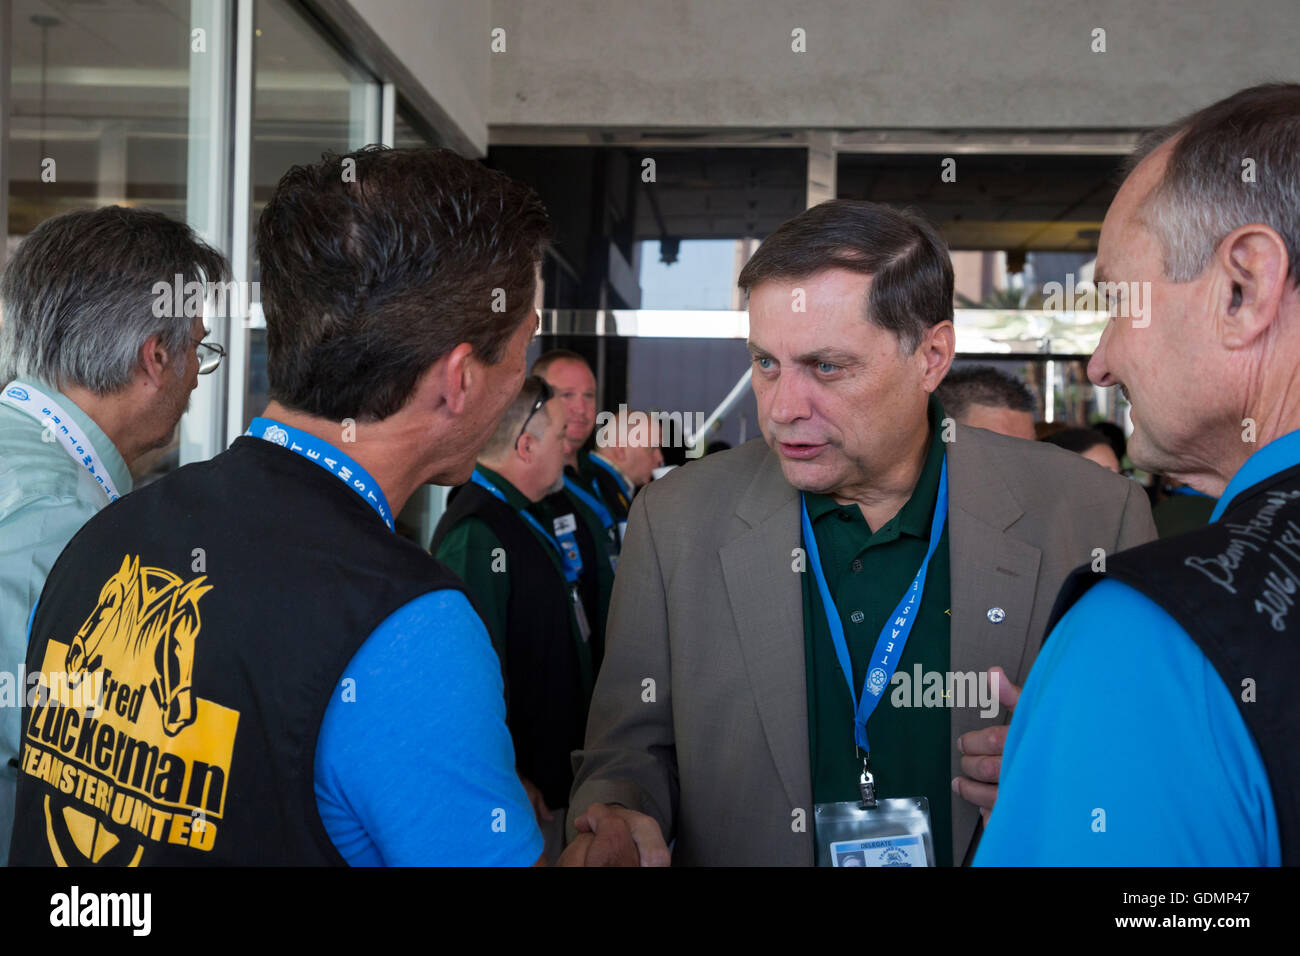 Las Vegas, Nevada - Fred Zuckerman talks with supporters during the Teamsters Union's convention. - Stock Image